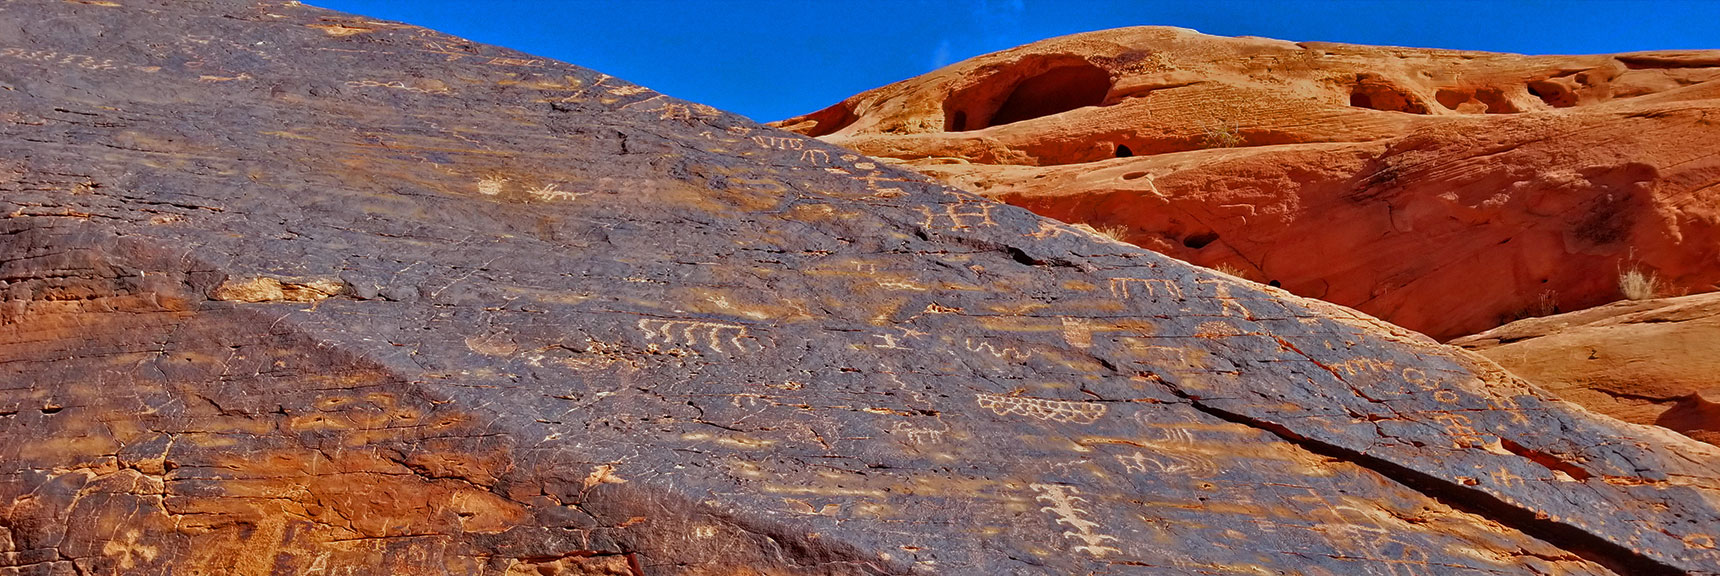 Petroglyphs on Mouse's Tank Trail in Valley of Fire State Park, Nevada, Slide 7